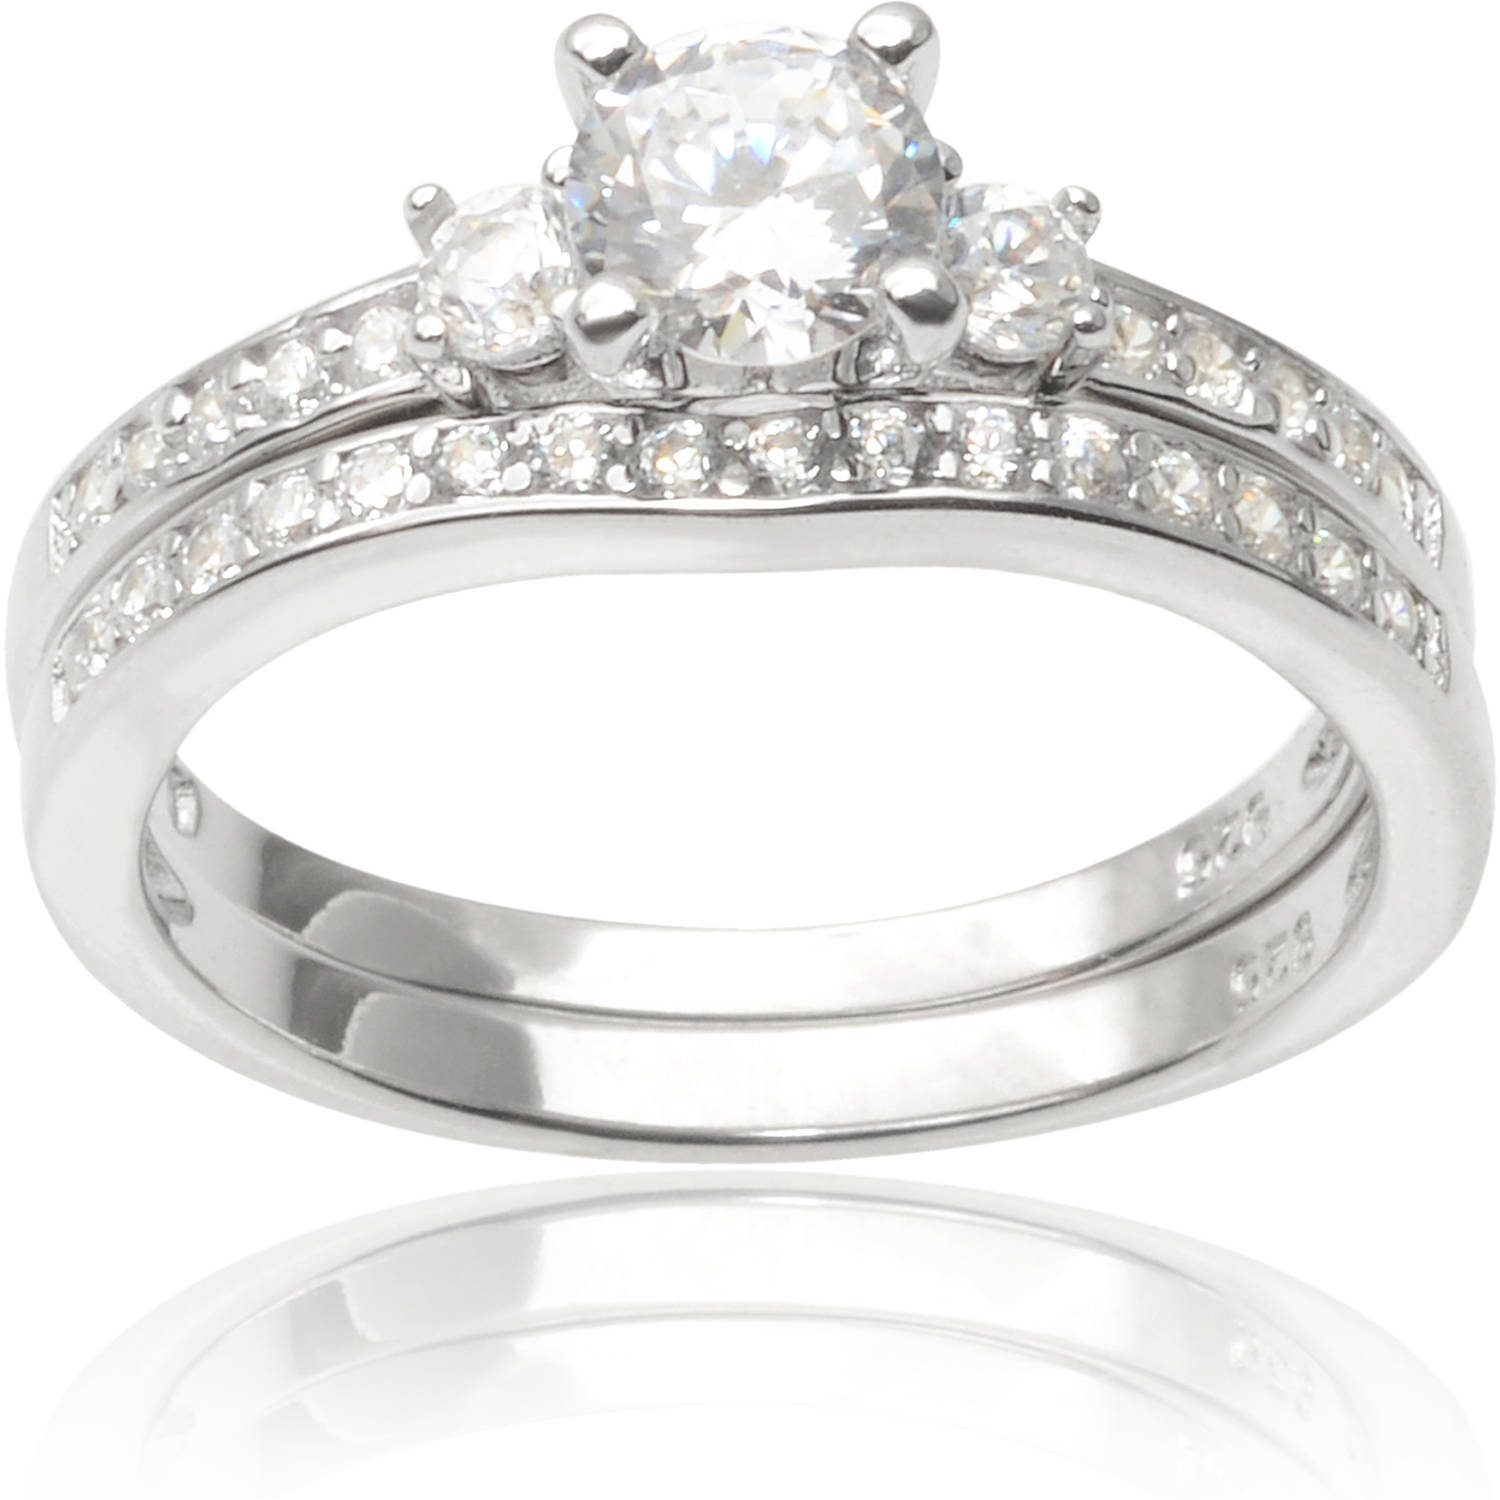 Alexandria Collection Sterling Silver 1-1/10 Carat T.G.W. Round Cubic Zirconia Bridal Ring Set